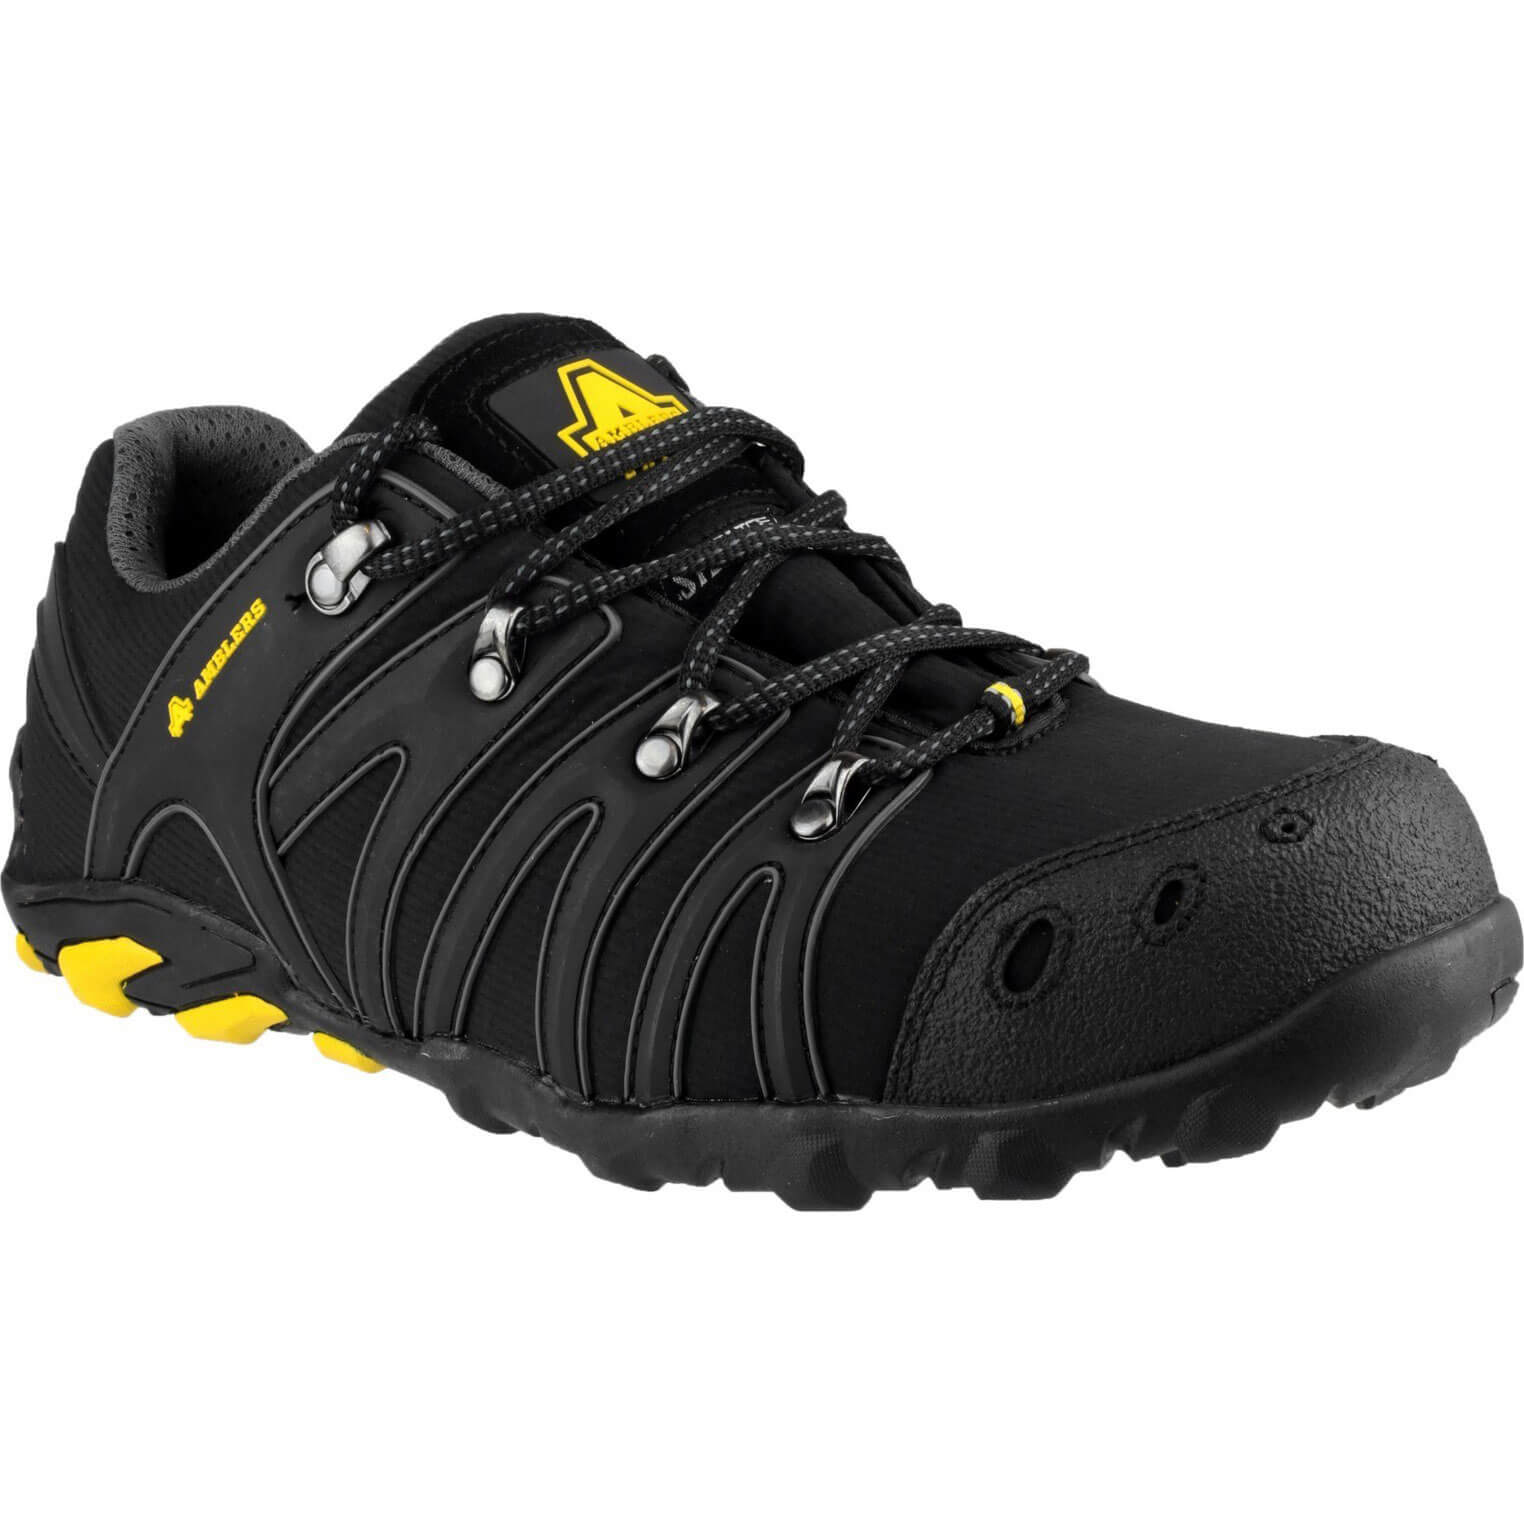 CHEAP Amblers Safety FS23 Soft Shell Trainer Black Size 12 – Men's Footwear